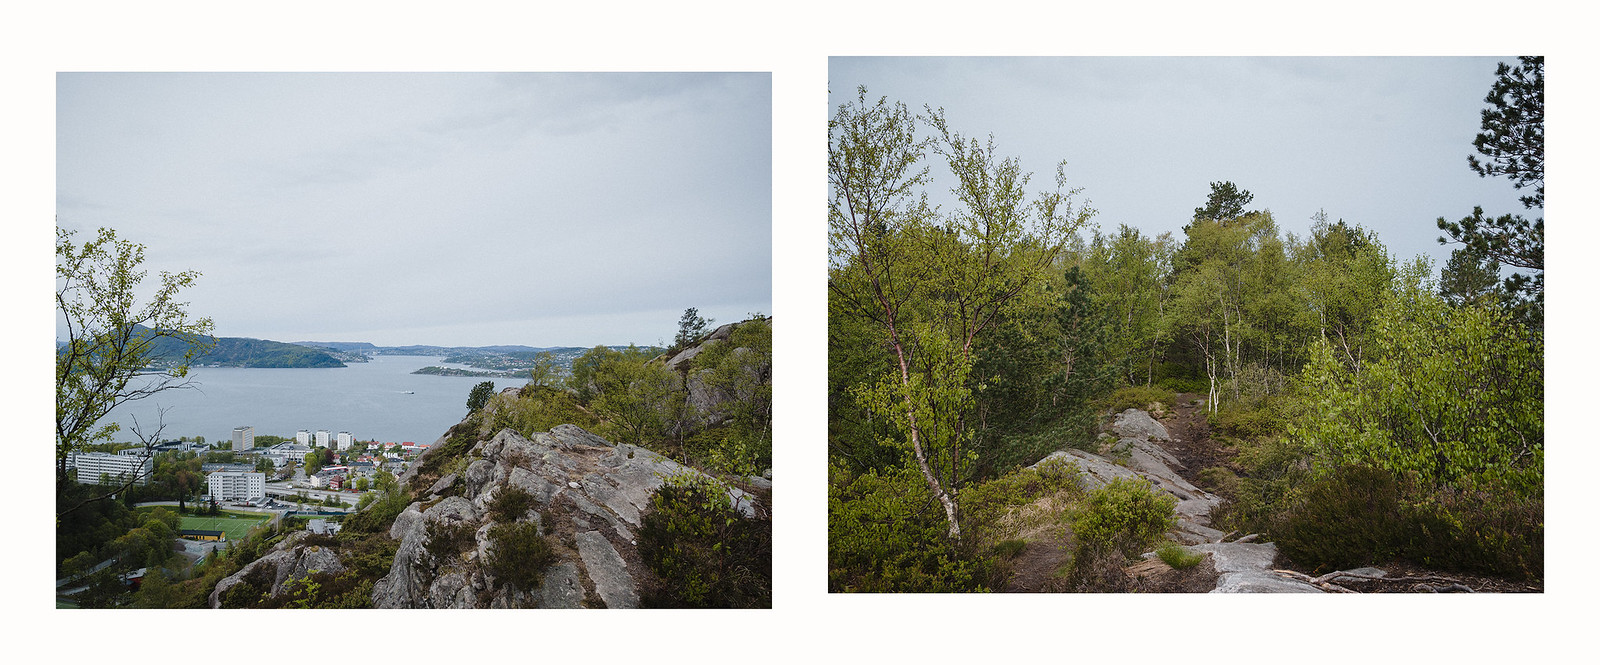 diptych panorama overlooking town and along a coarse trail into the woods